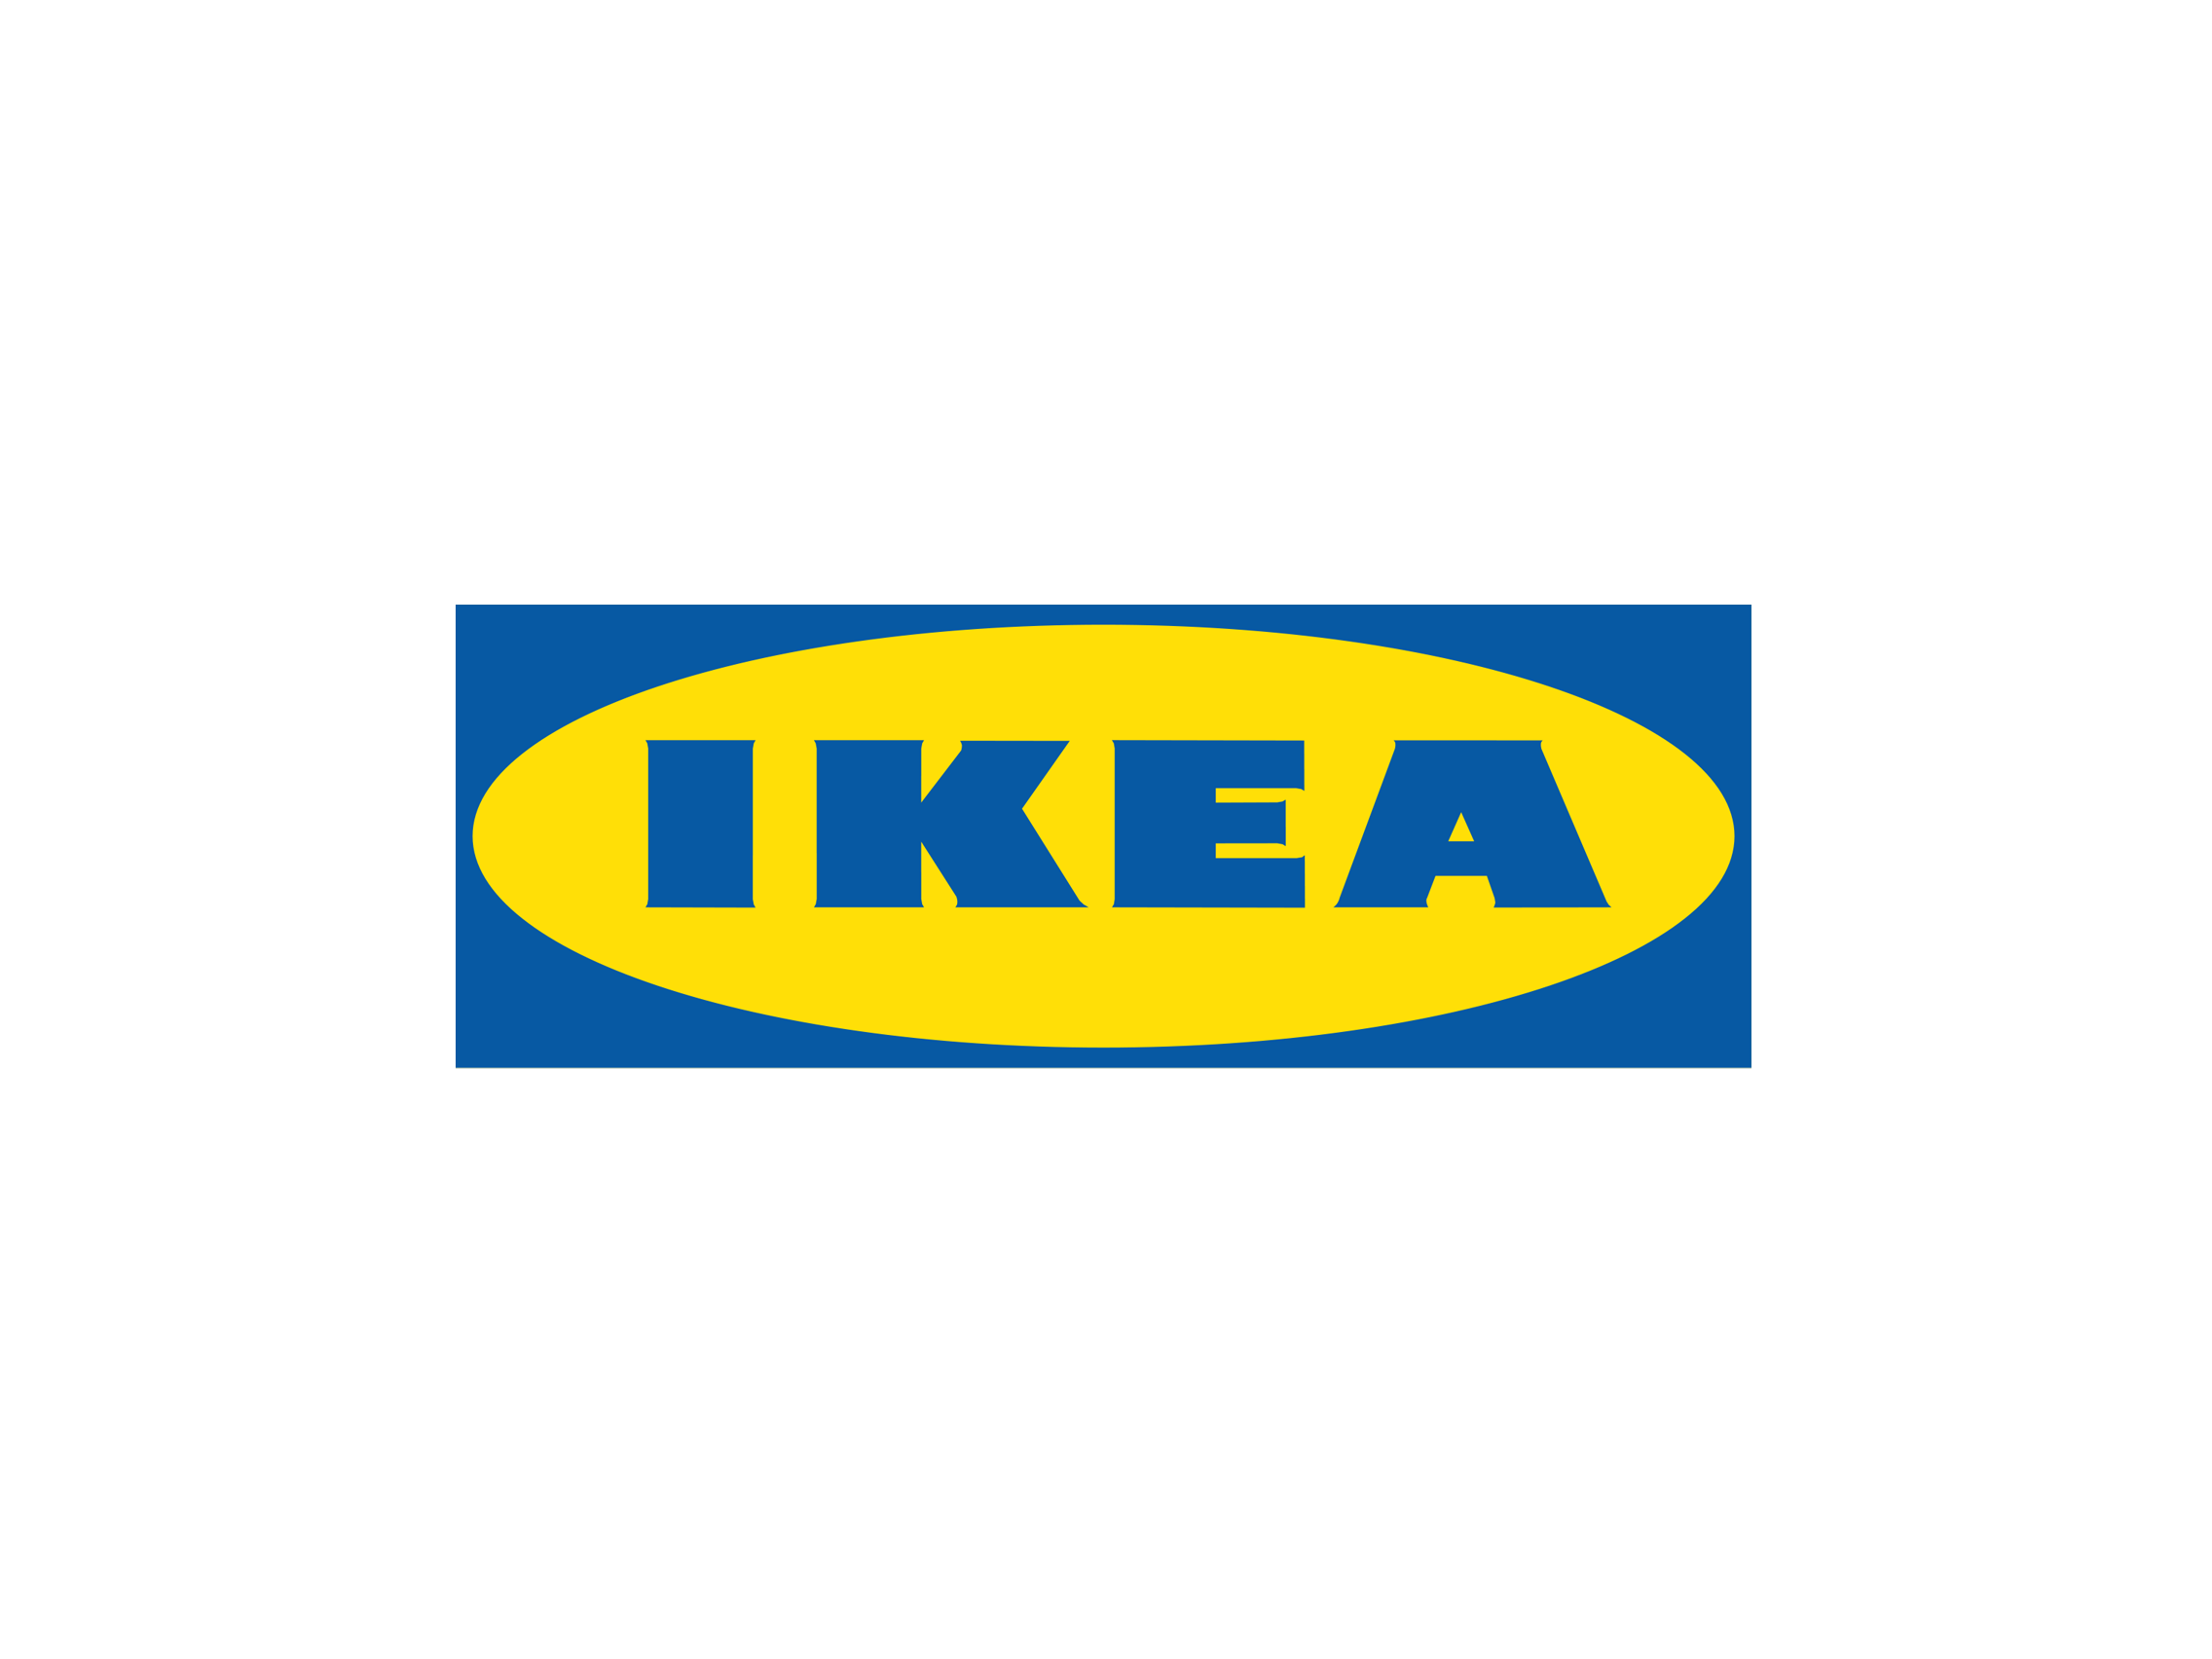 IKEA Promo Codes for December Save 30% w/ 13 active IKEA Sales and Third-party Deals. Today's best coolafil40.ga Coupon Code: IKEA FAMILY Members Receive 25% Off General Admission to Explore the Garden During Flashlight Tours. Get crowdsourced + verified coupons at Dealspotr/5().